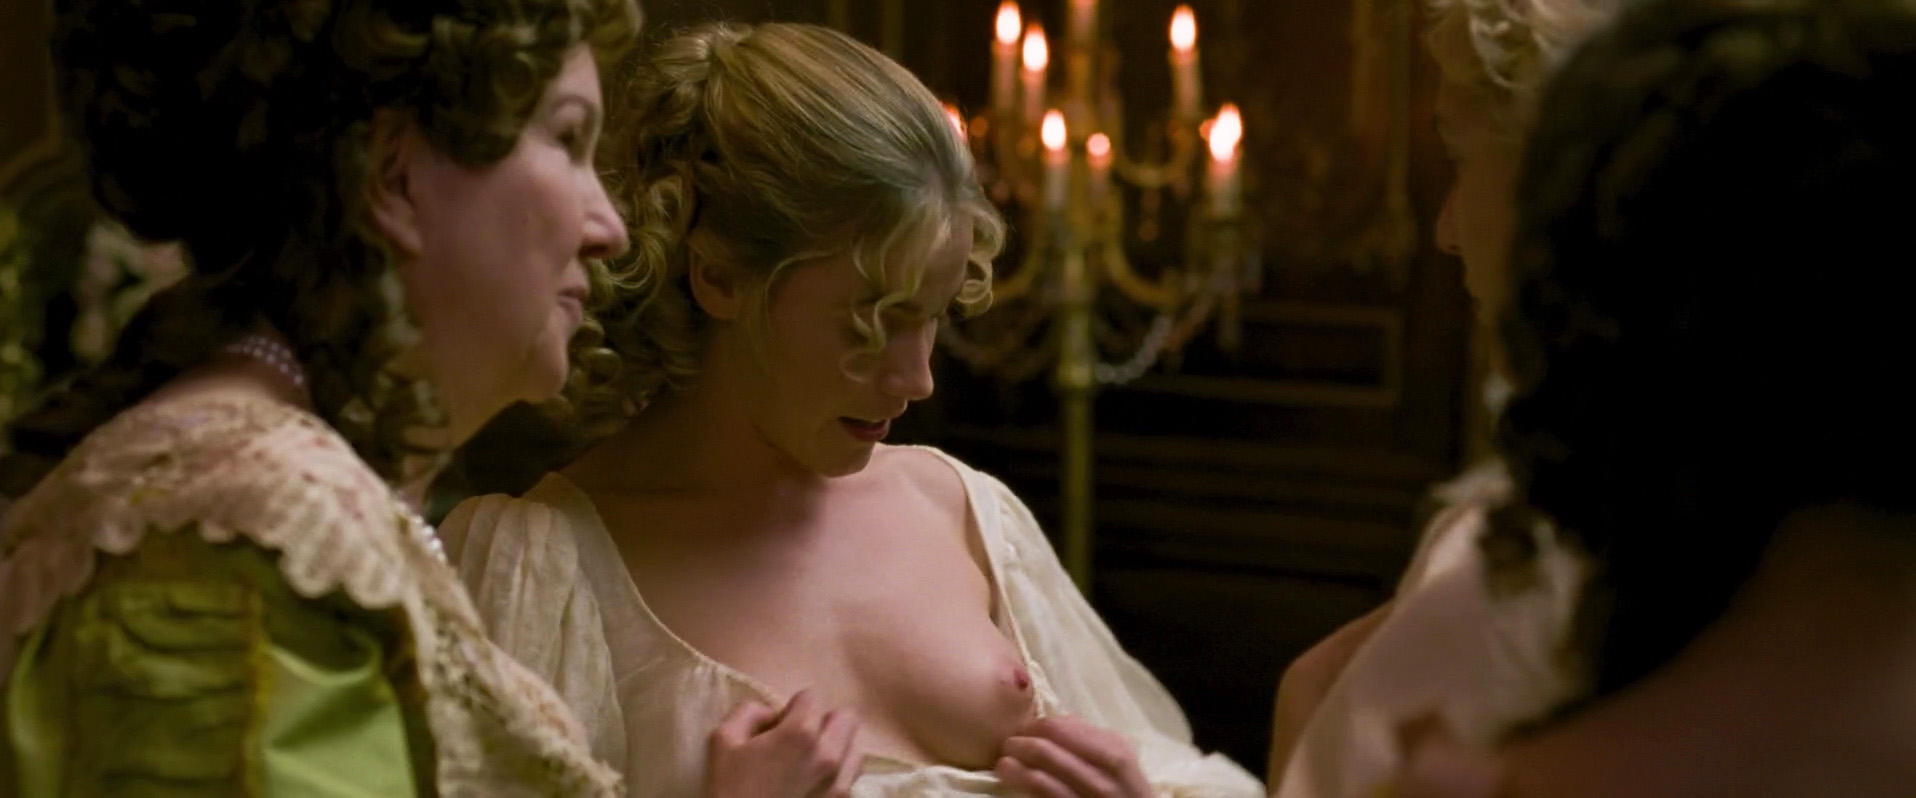 Nude Movies Of Kate Winslet